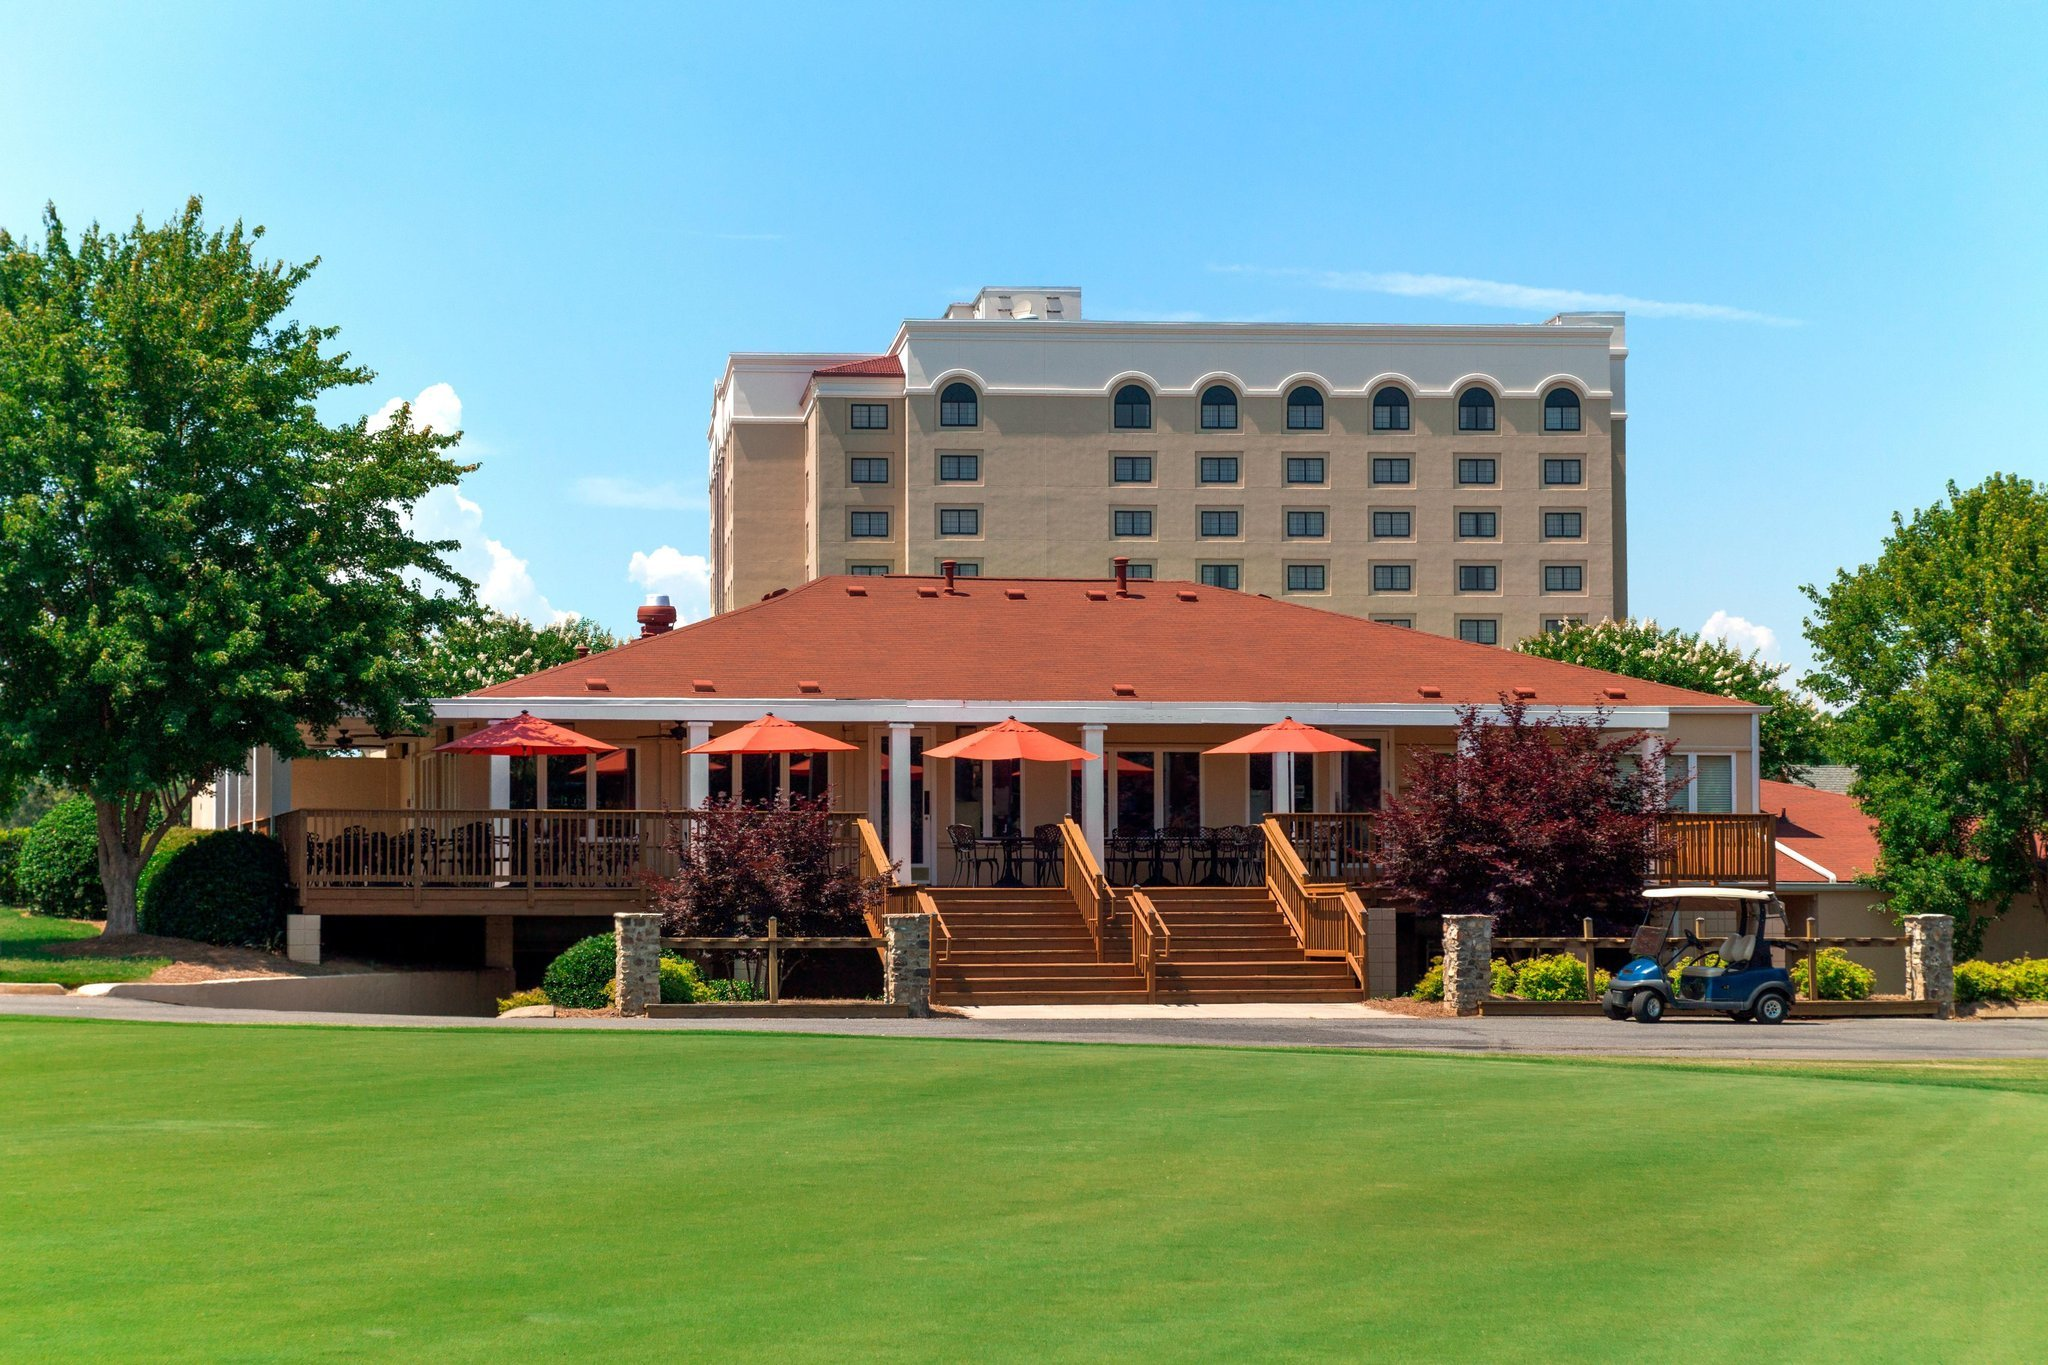 Embassy Suites by Hilton Greenville Golf Resort & Conference Center